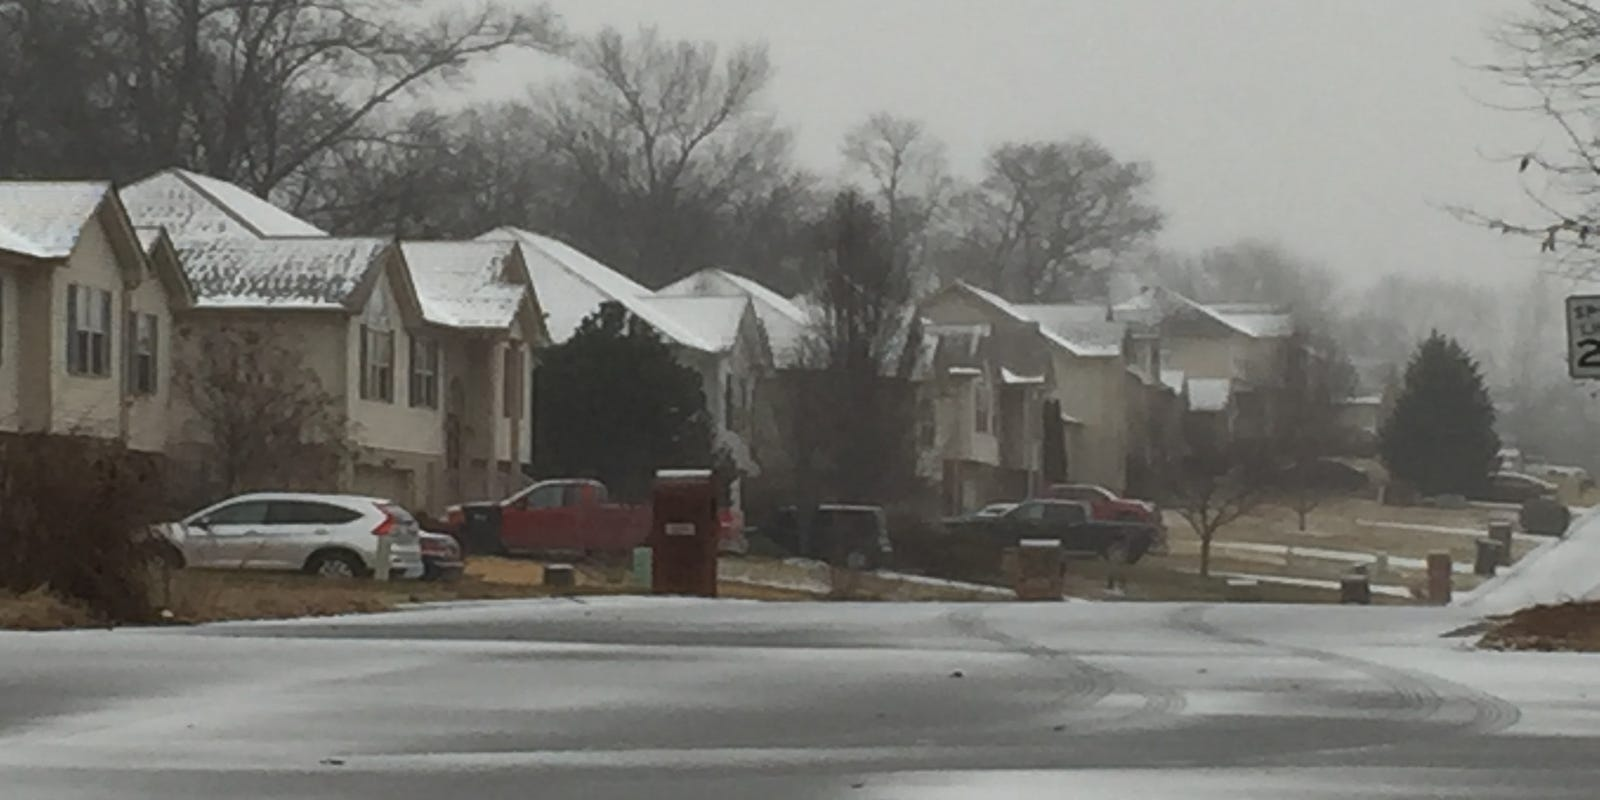 Nashville weather: Here's what the snow and ice looks like